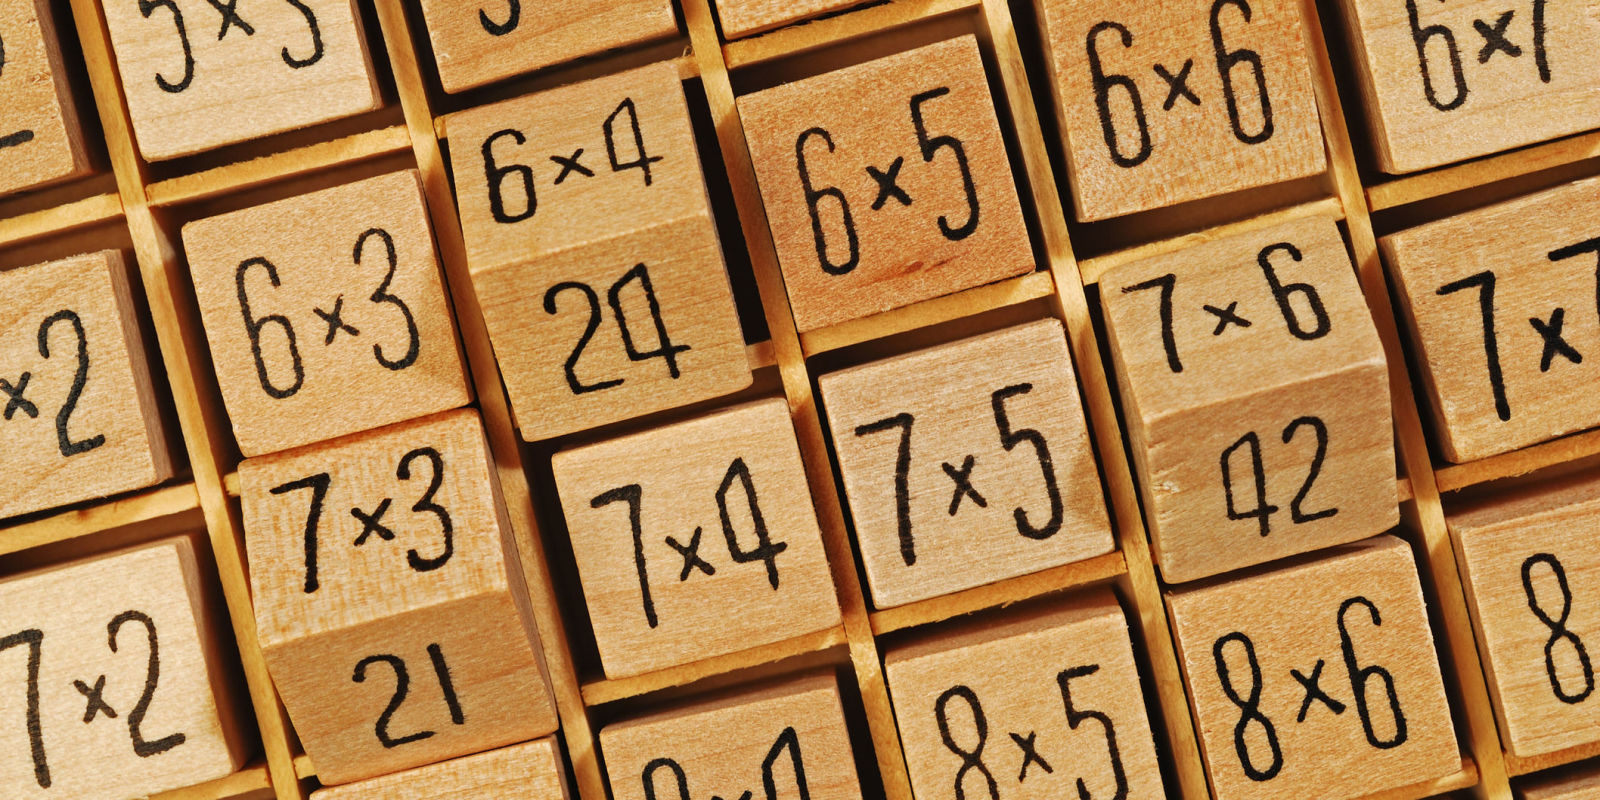 12 Brain Teasers That Test What You Know